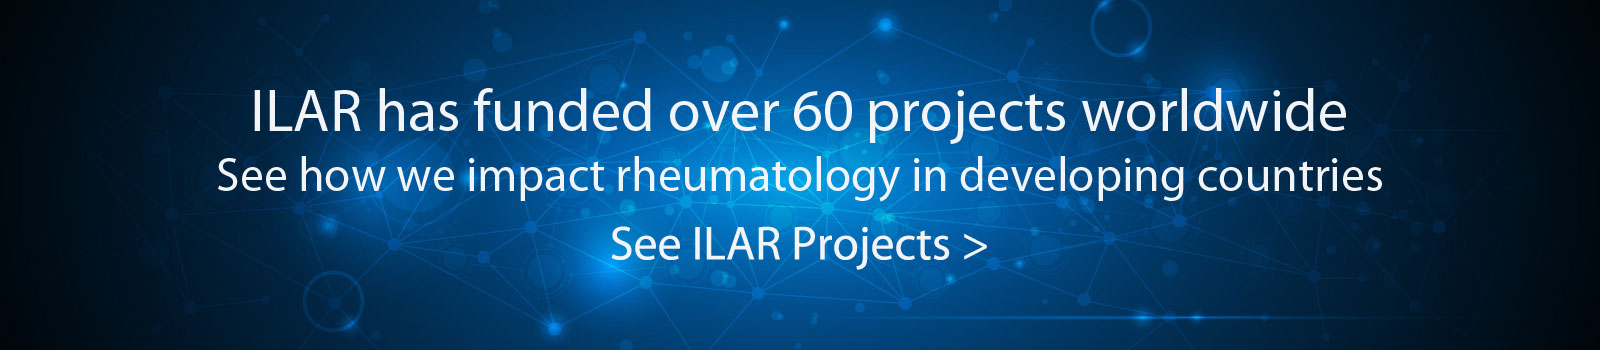 About ILAR projects